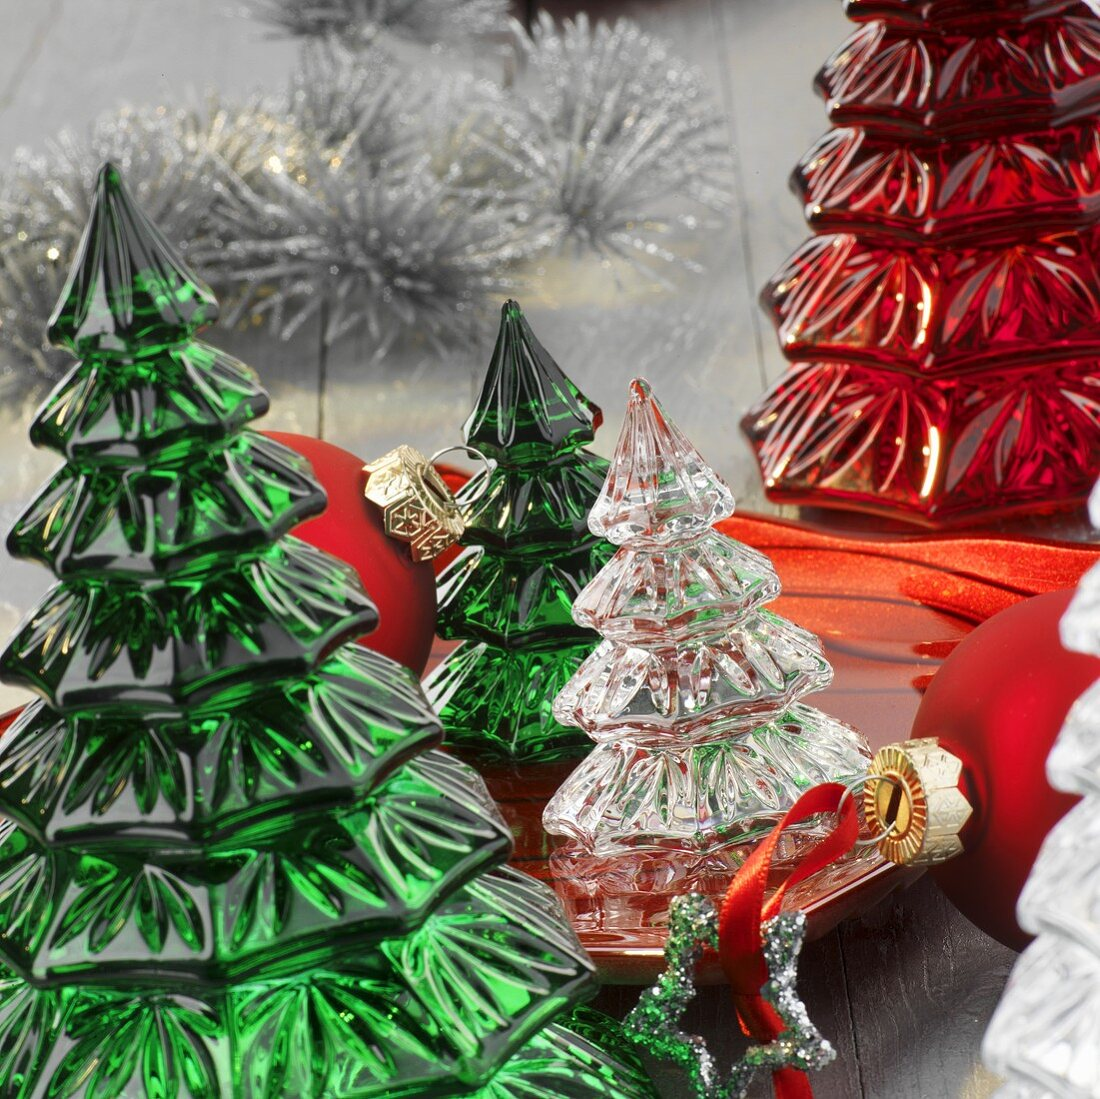 Small glass Christmas trees (table decorations)